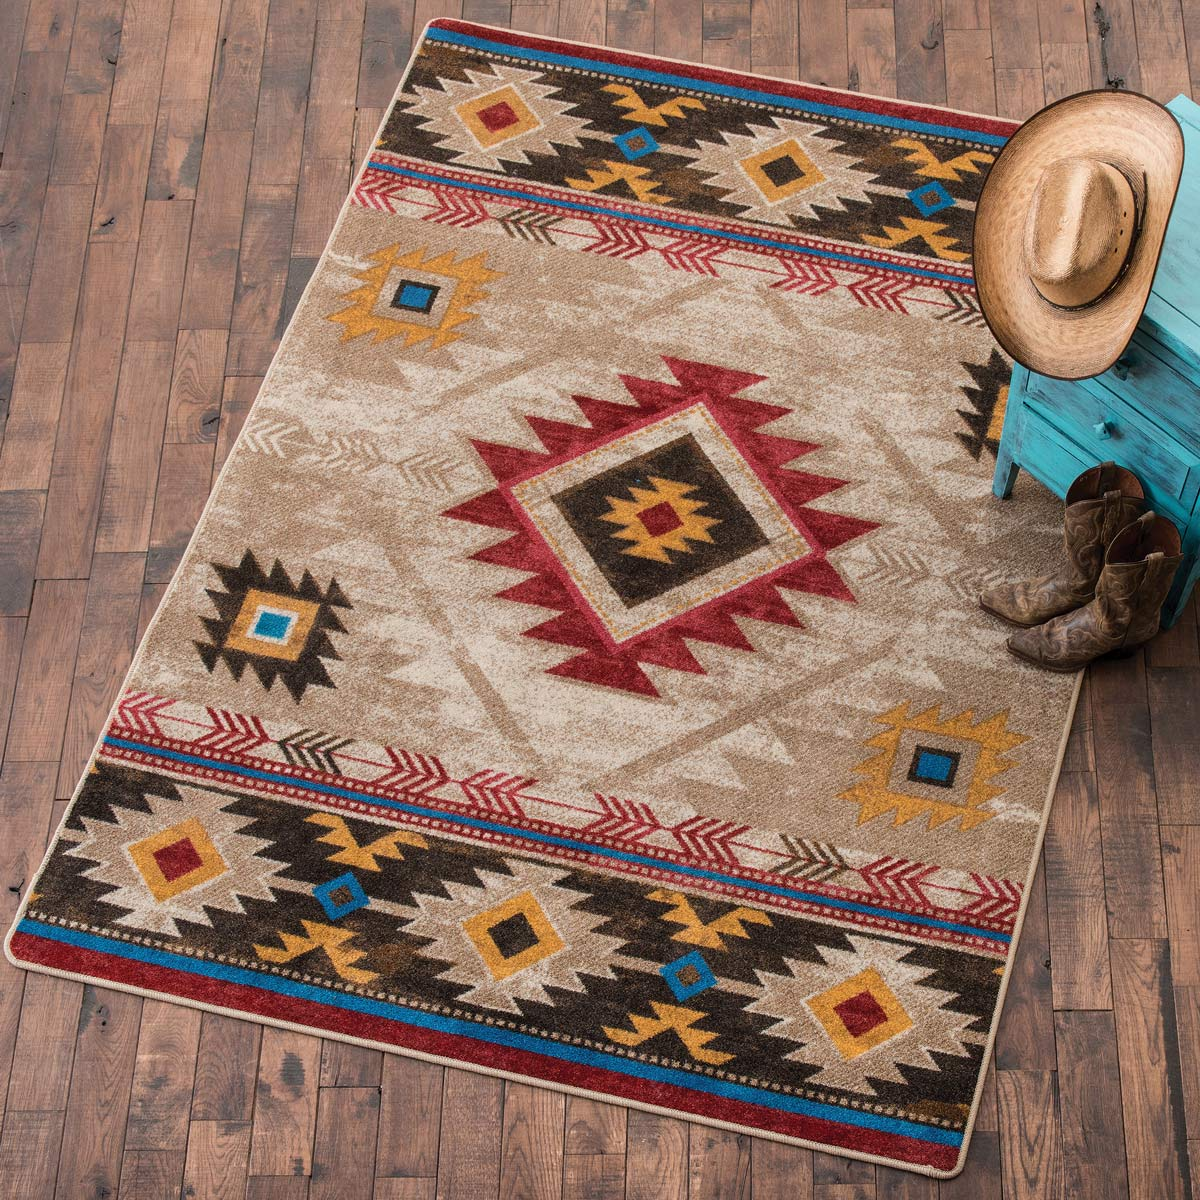 Southwest Rugs 4 X 5 Whiskey River Natural Ruglone Star Western Decor